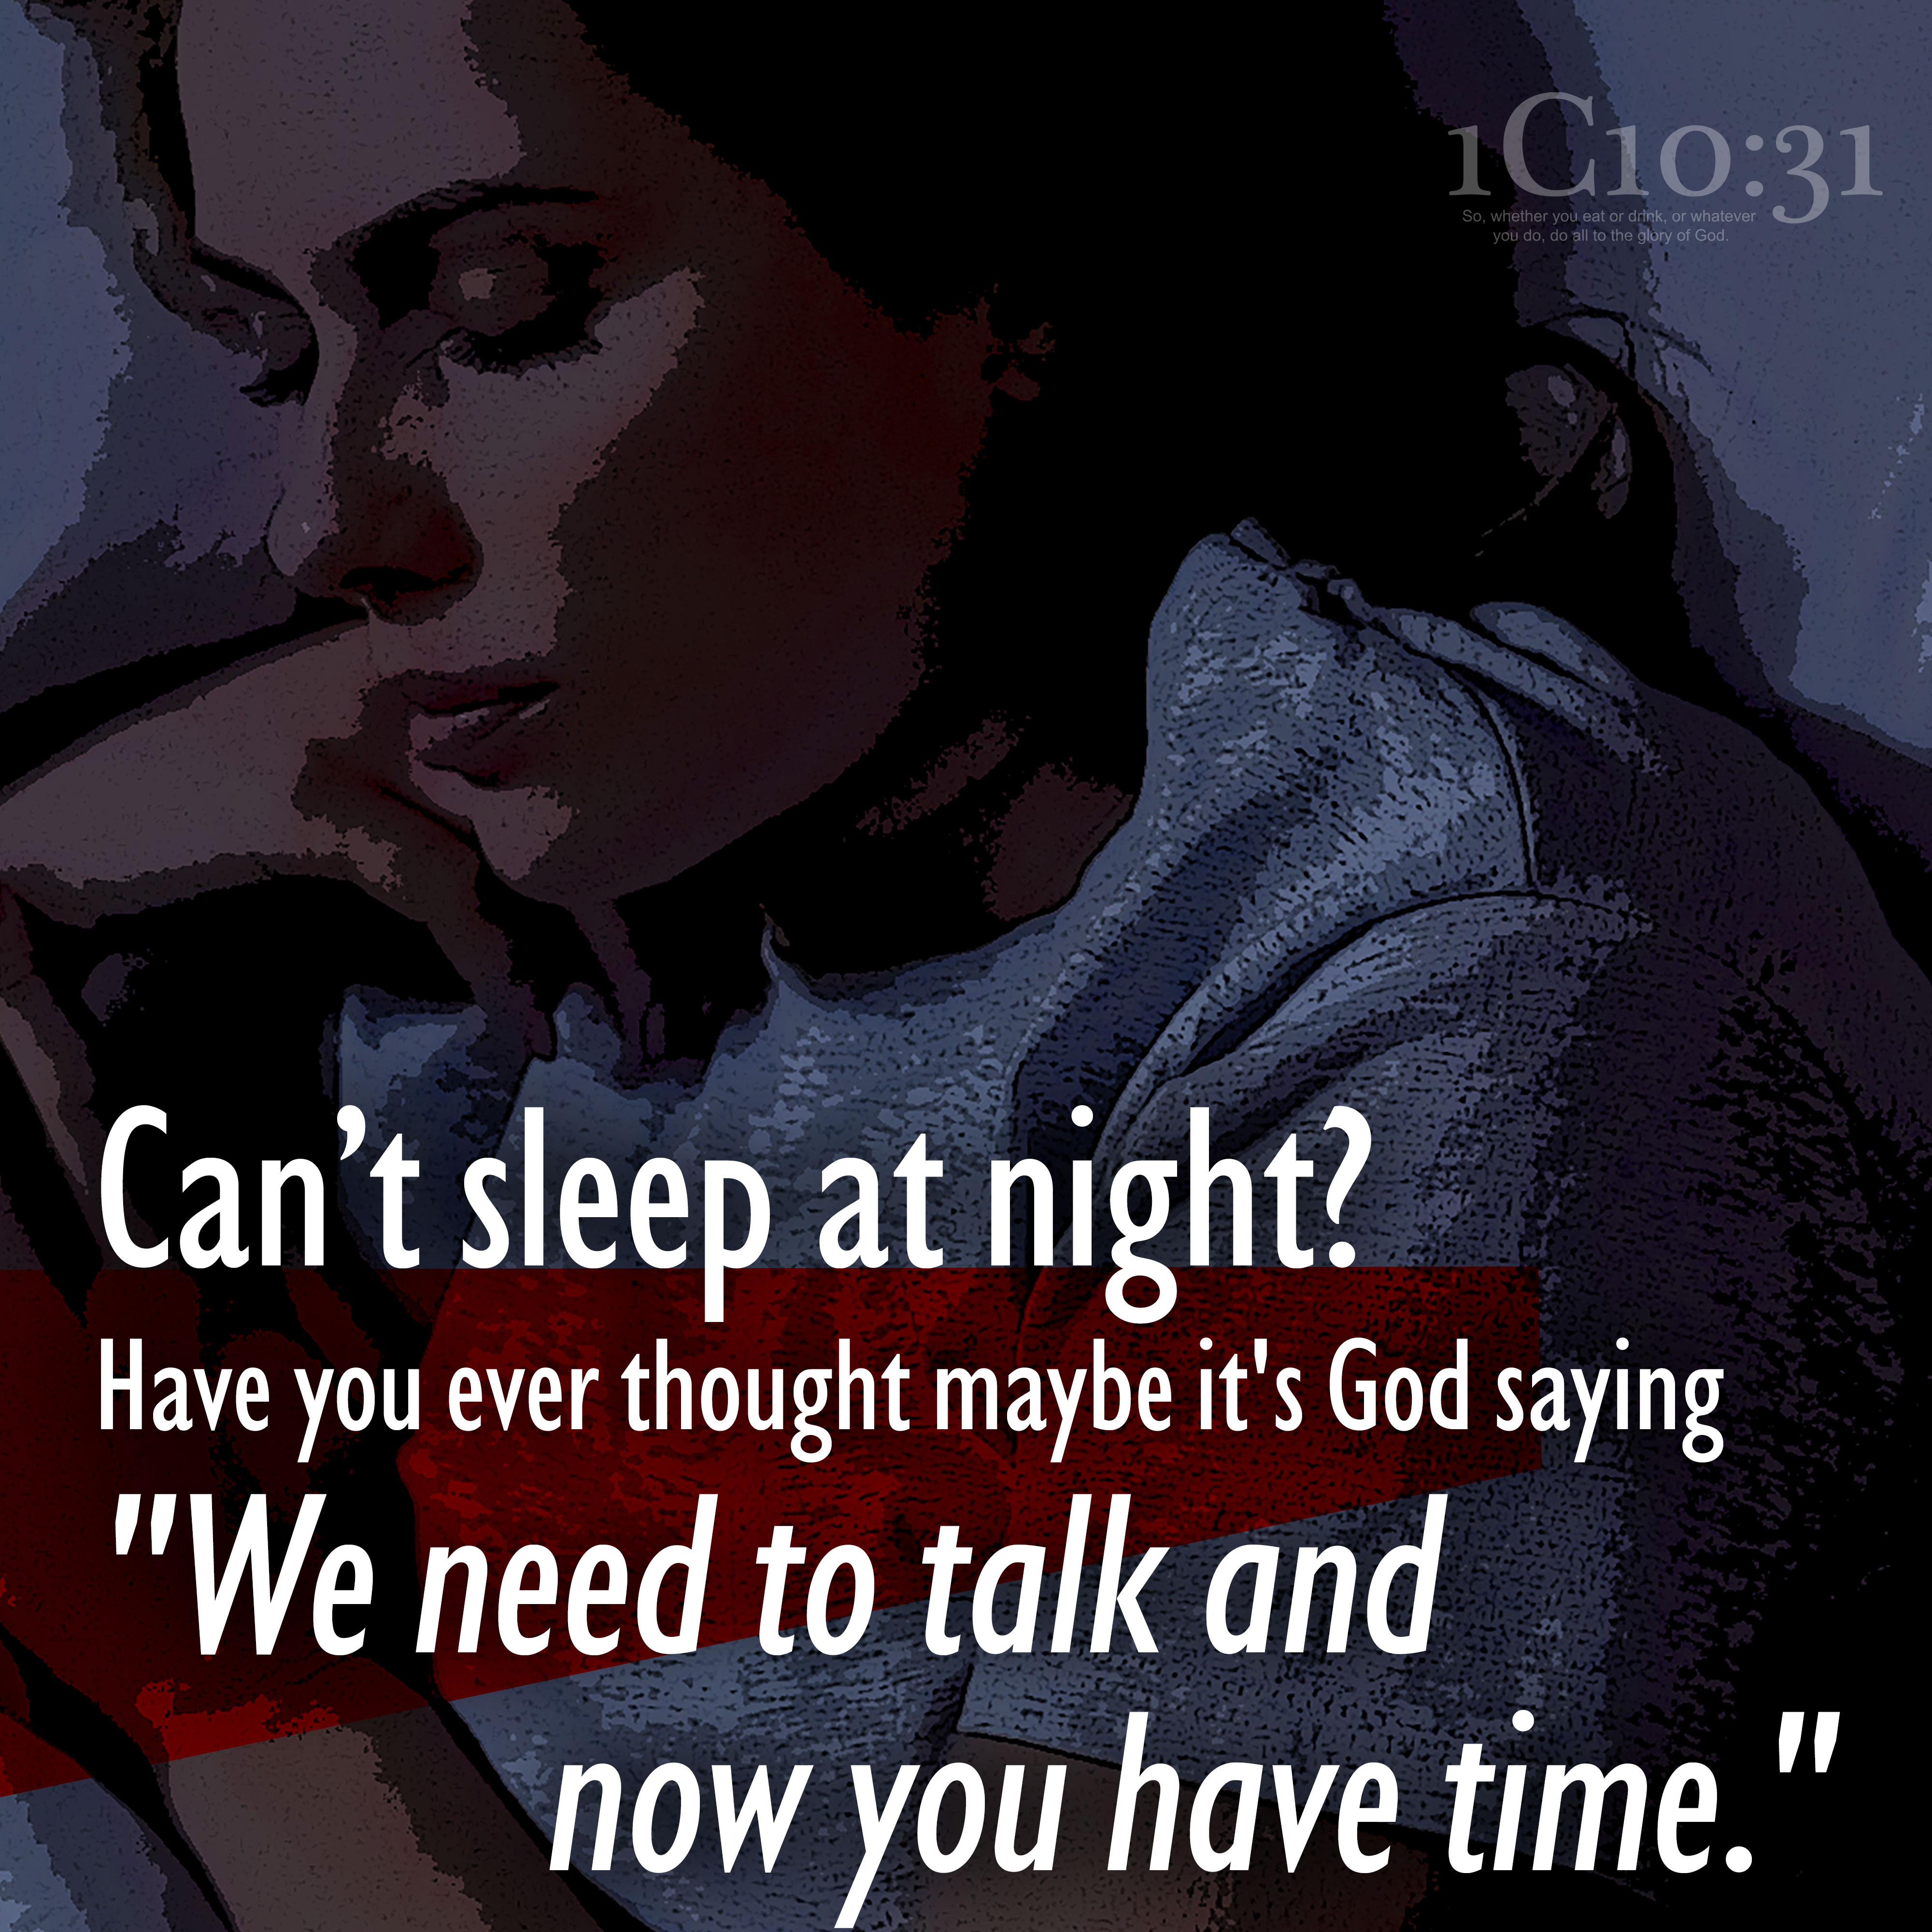 """Can't sleep at night? Have you ever thought maybe it's God saying """"We need to talk and now you have time."""""""